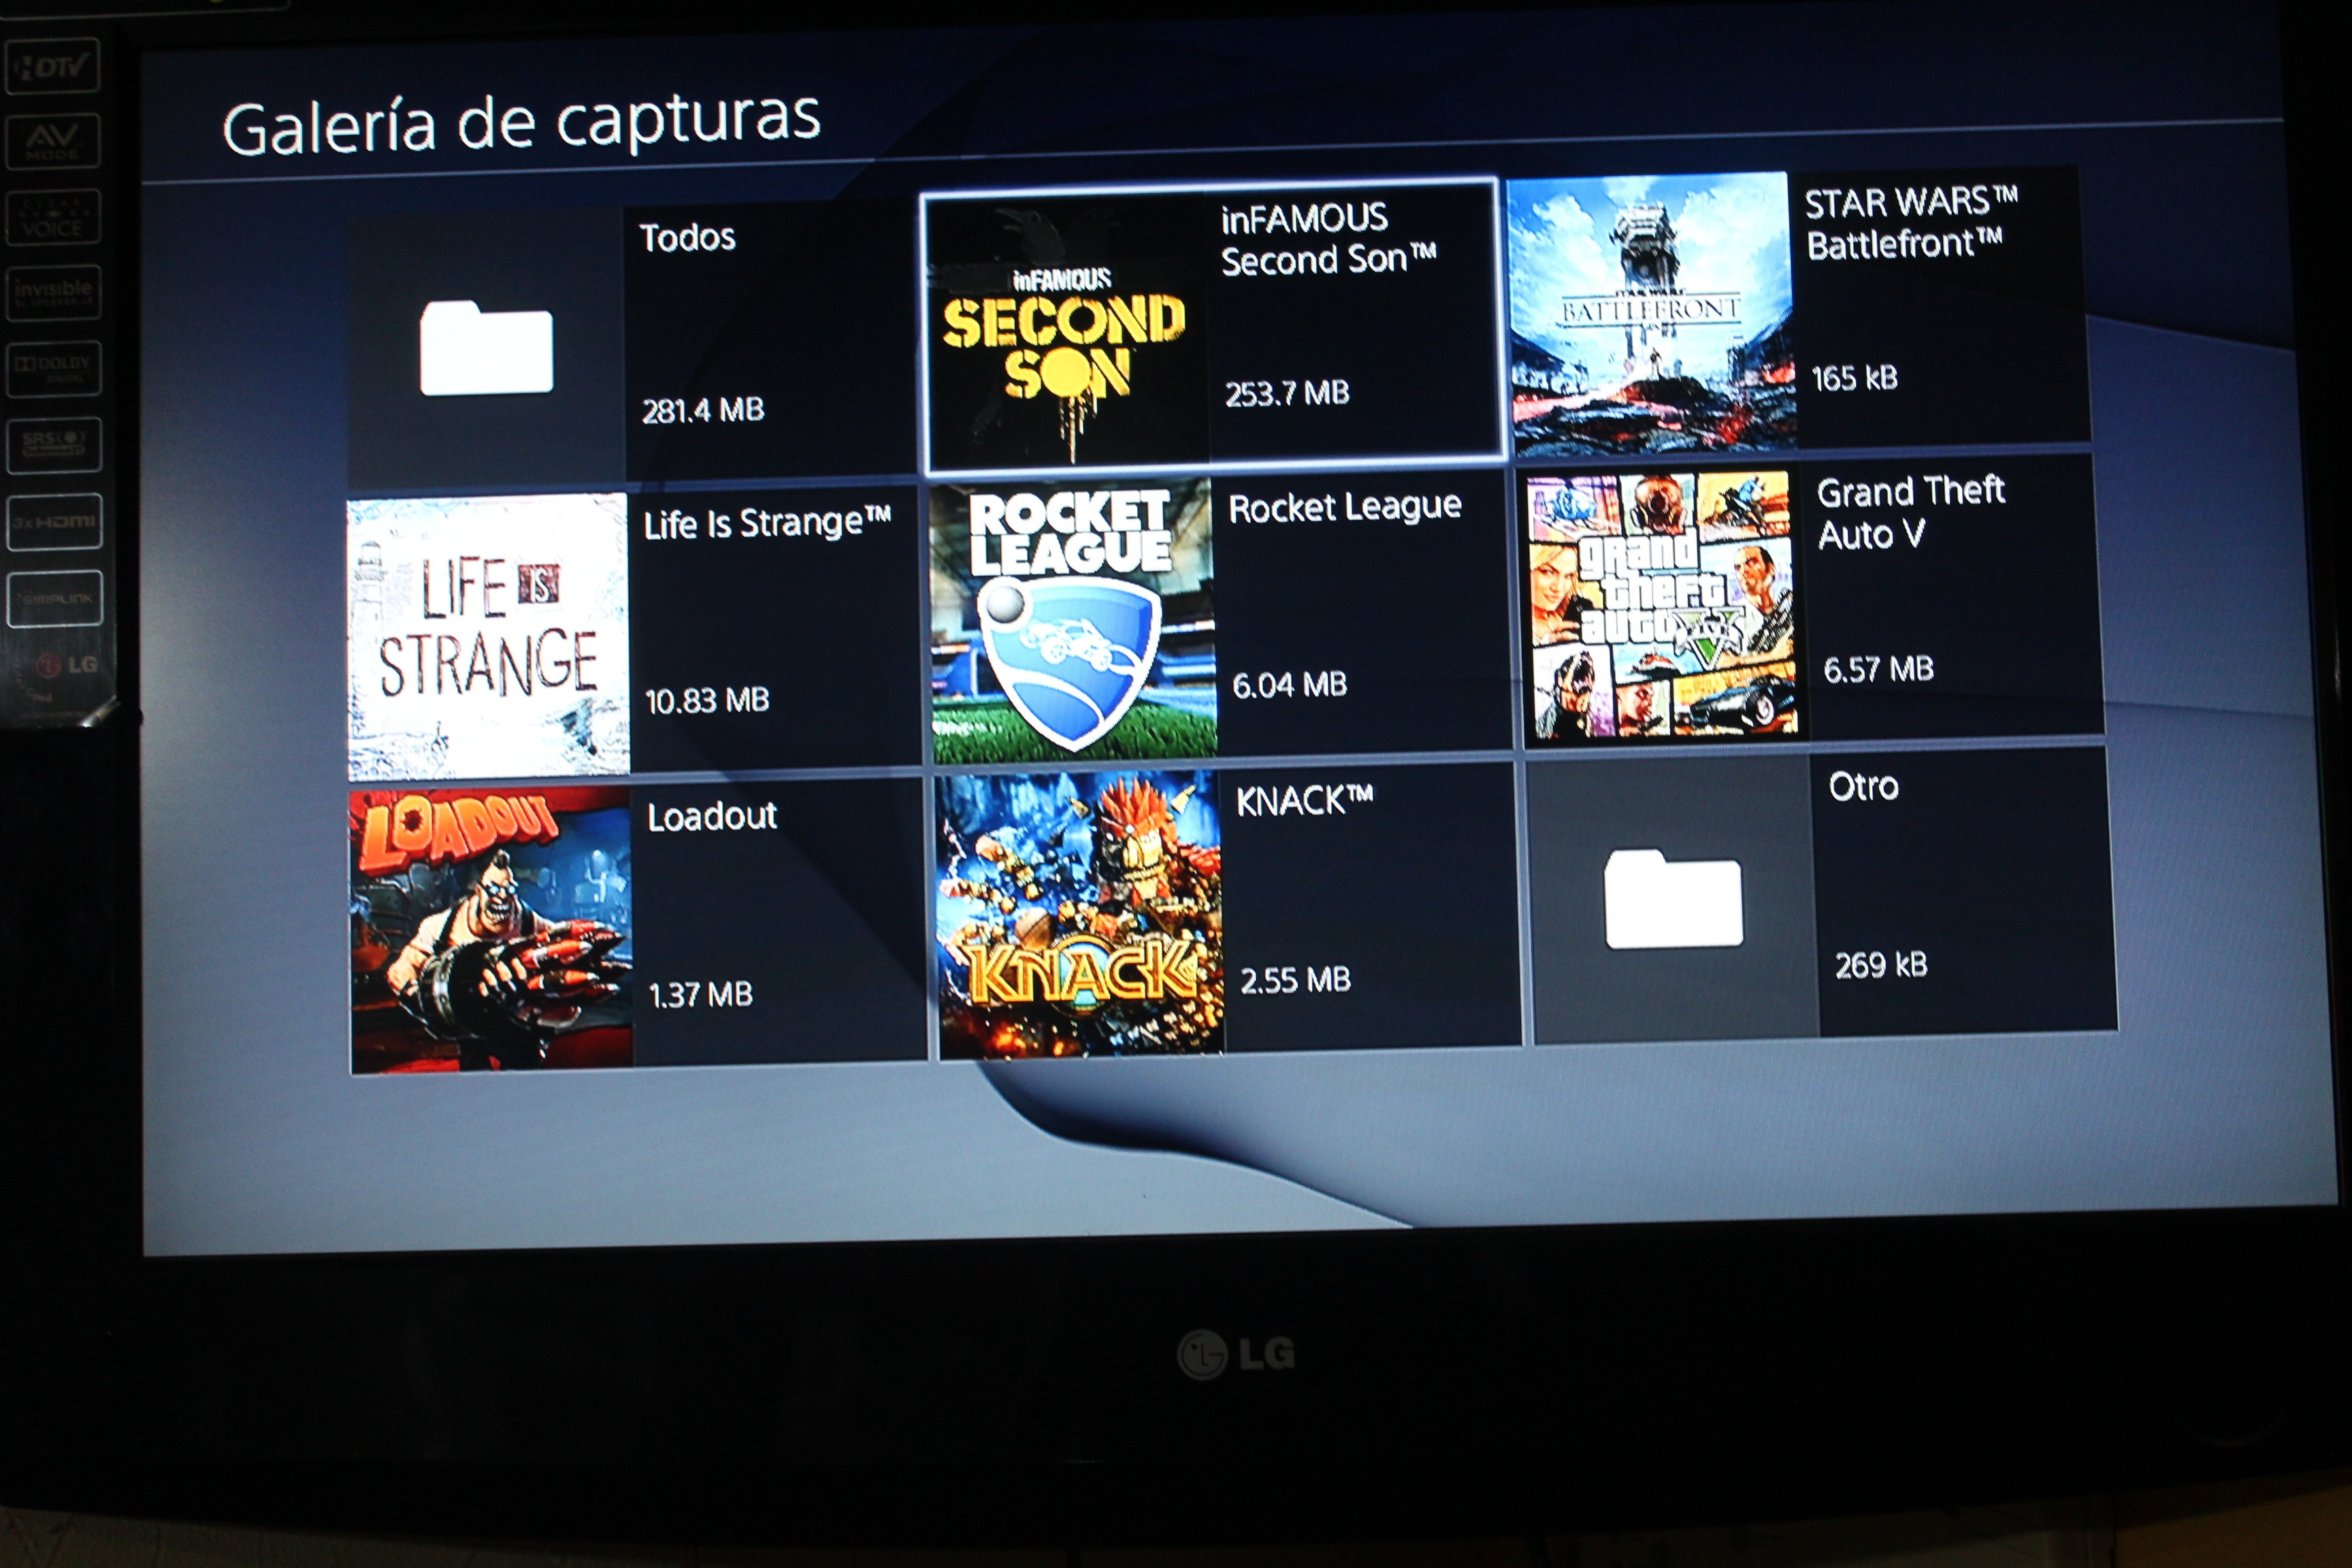 Graba Gameplays de PS4 sin capturadora y pasalos a tu USB